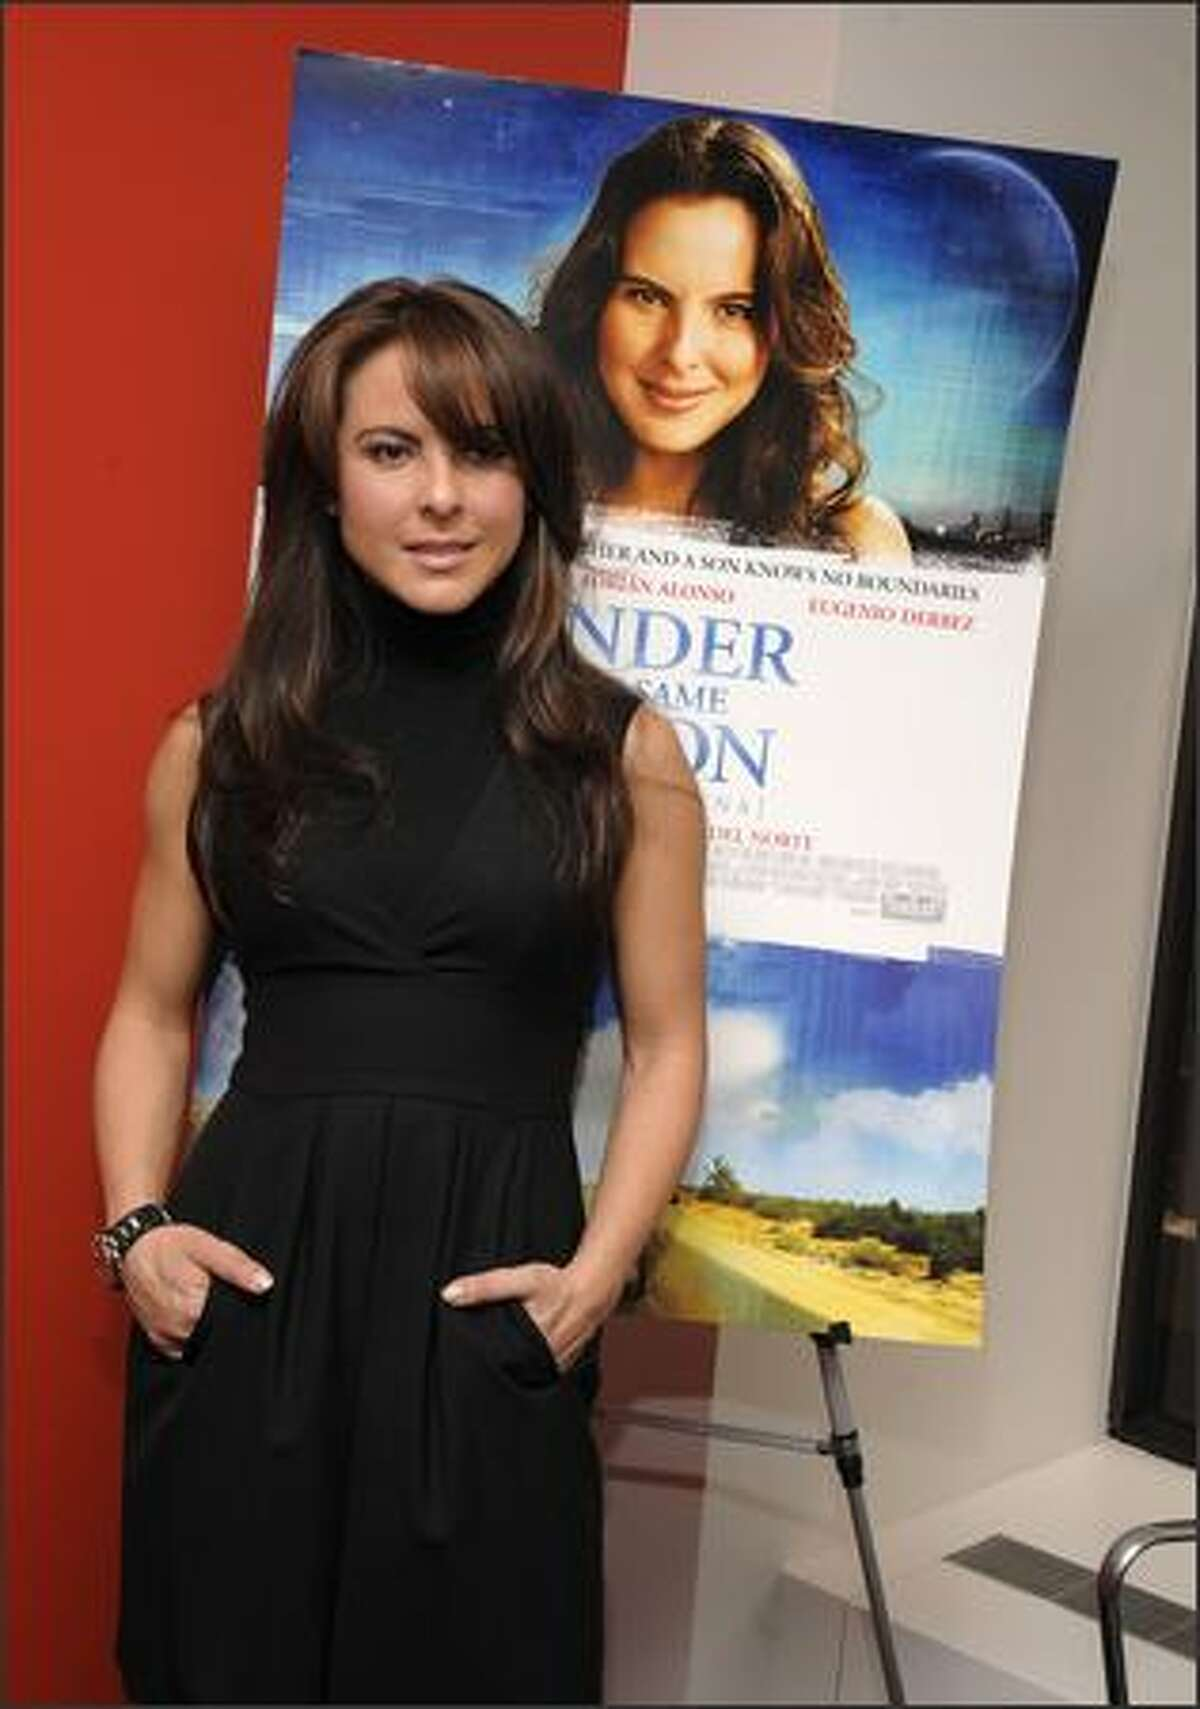 Actress Kate Del Castillo poses for pictures at a news conference to promote her new movie